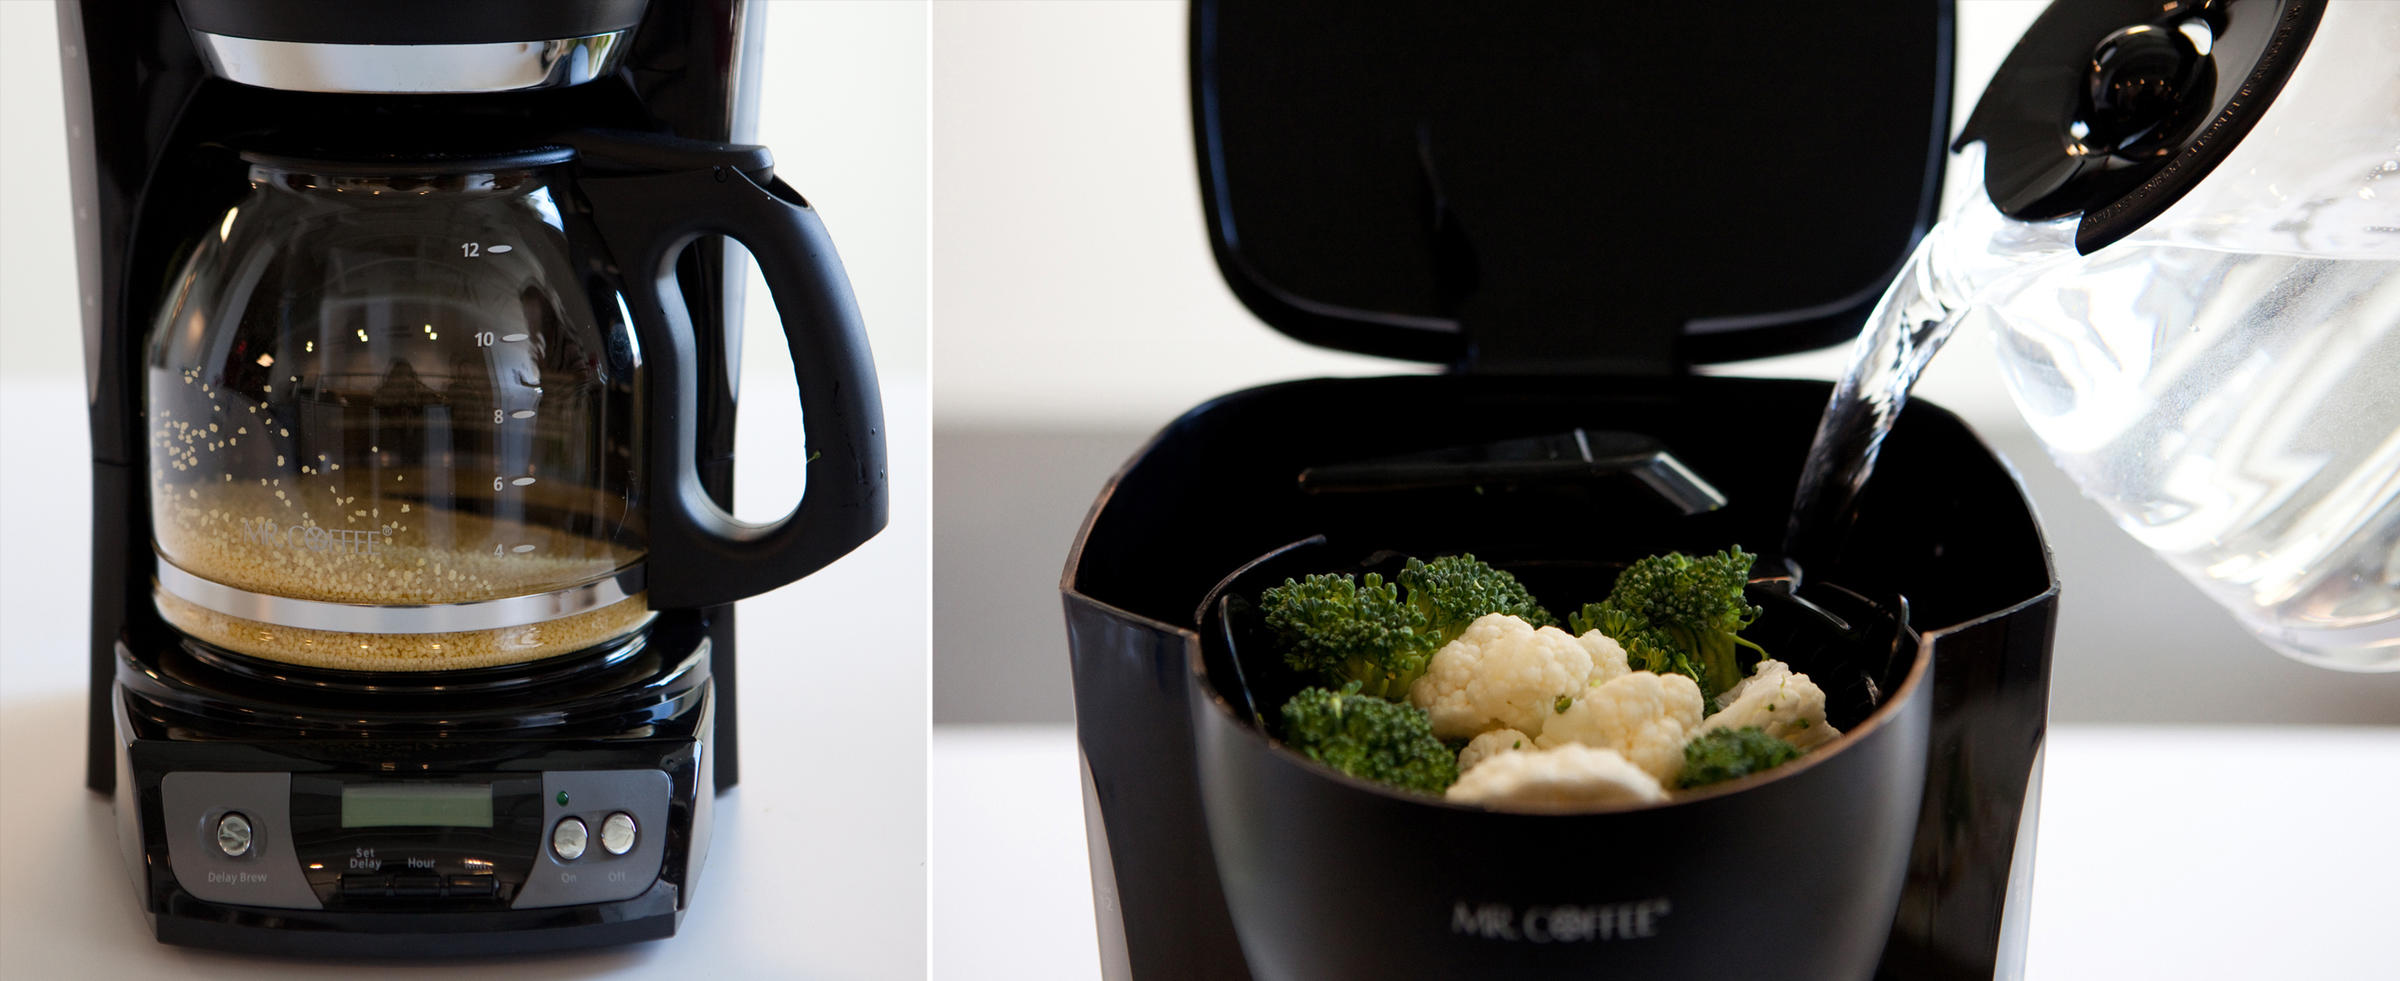 Parallel Processing Couscous Cooks In The Coffee Maker S Carafe While Broccoli And Cauliflower Steam Basket